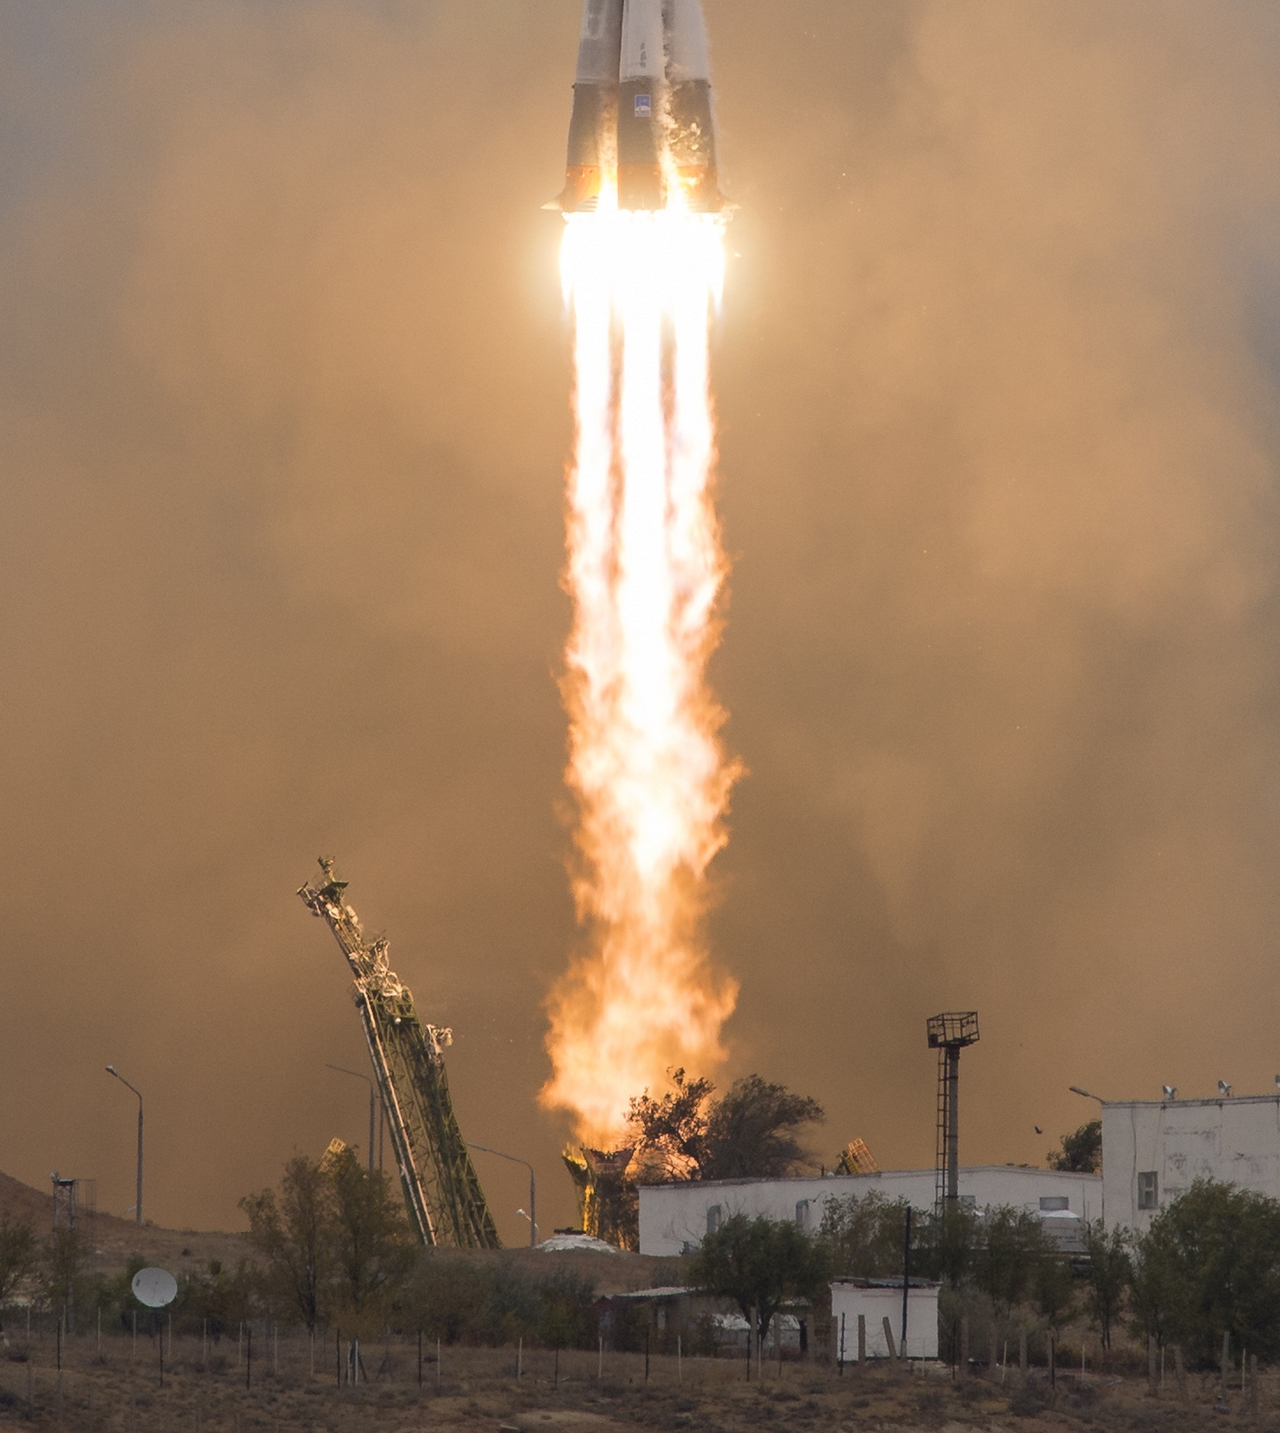 photos-of-the-launch-of-the-russian-spacecraft-soyuz-ms-02-and-the-american-antares-11